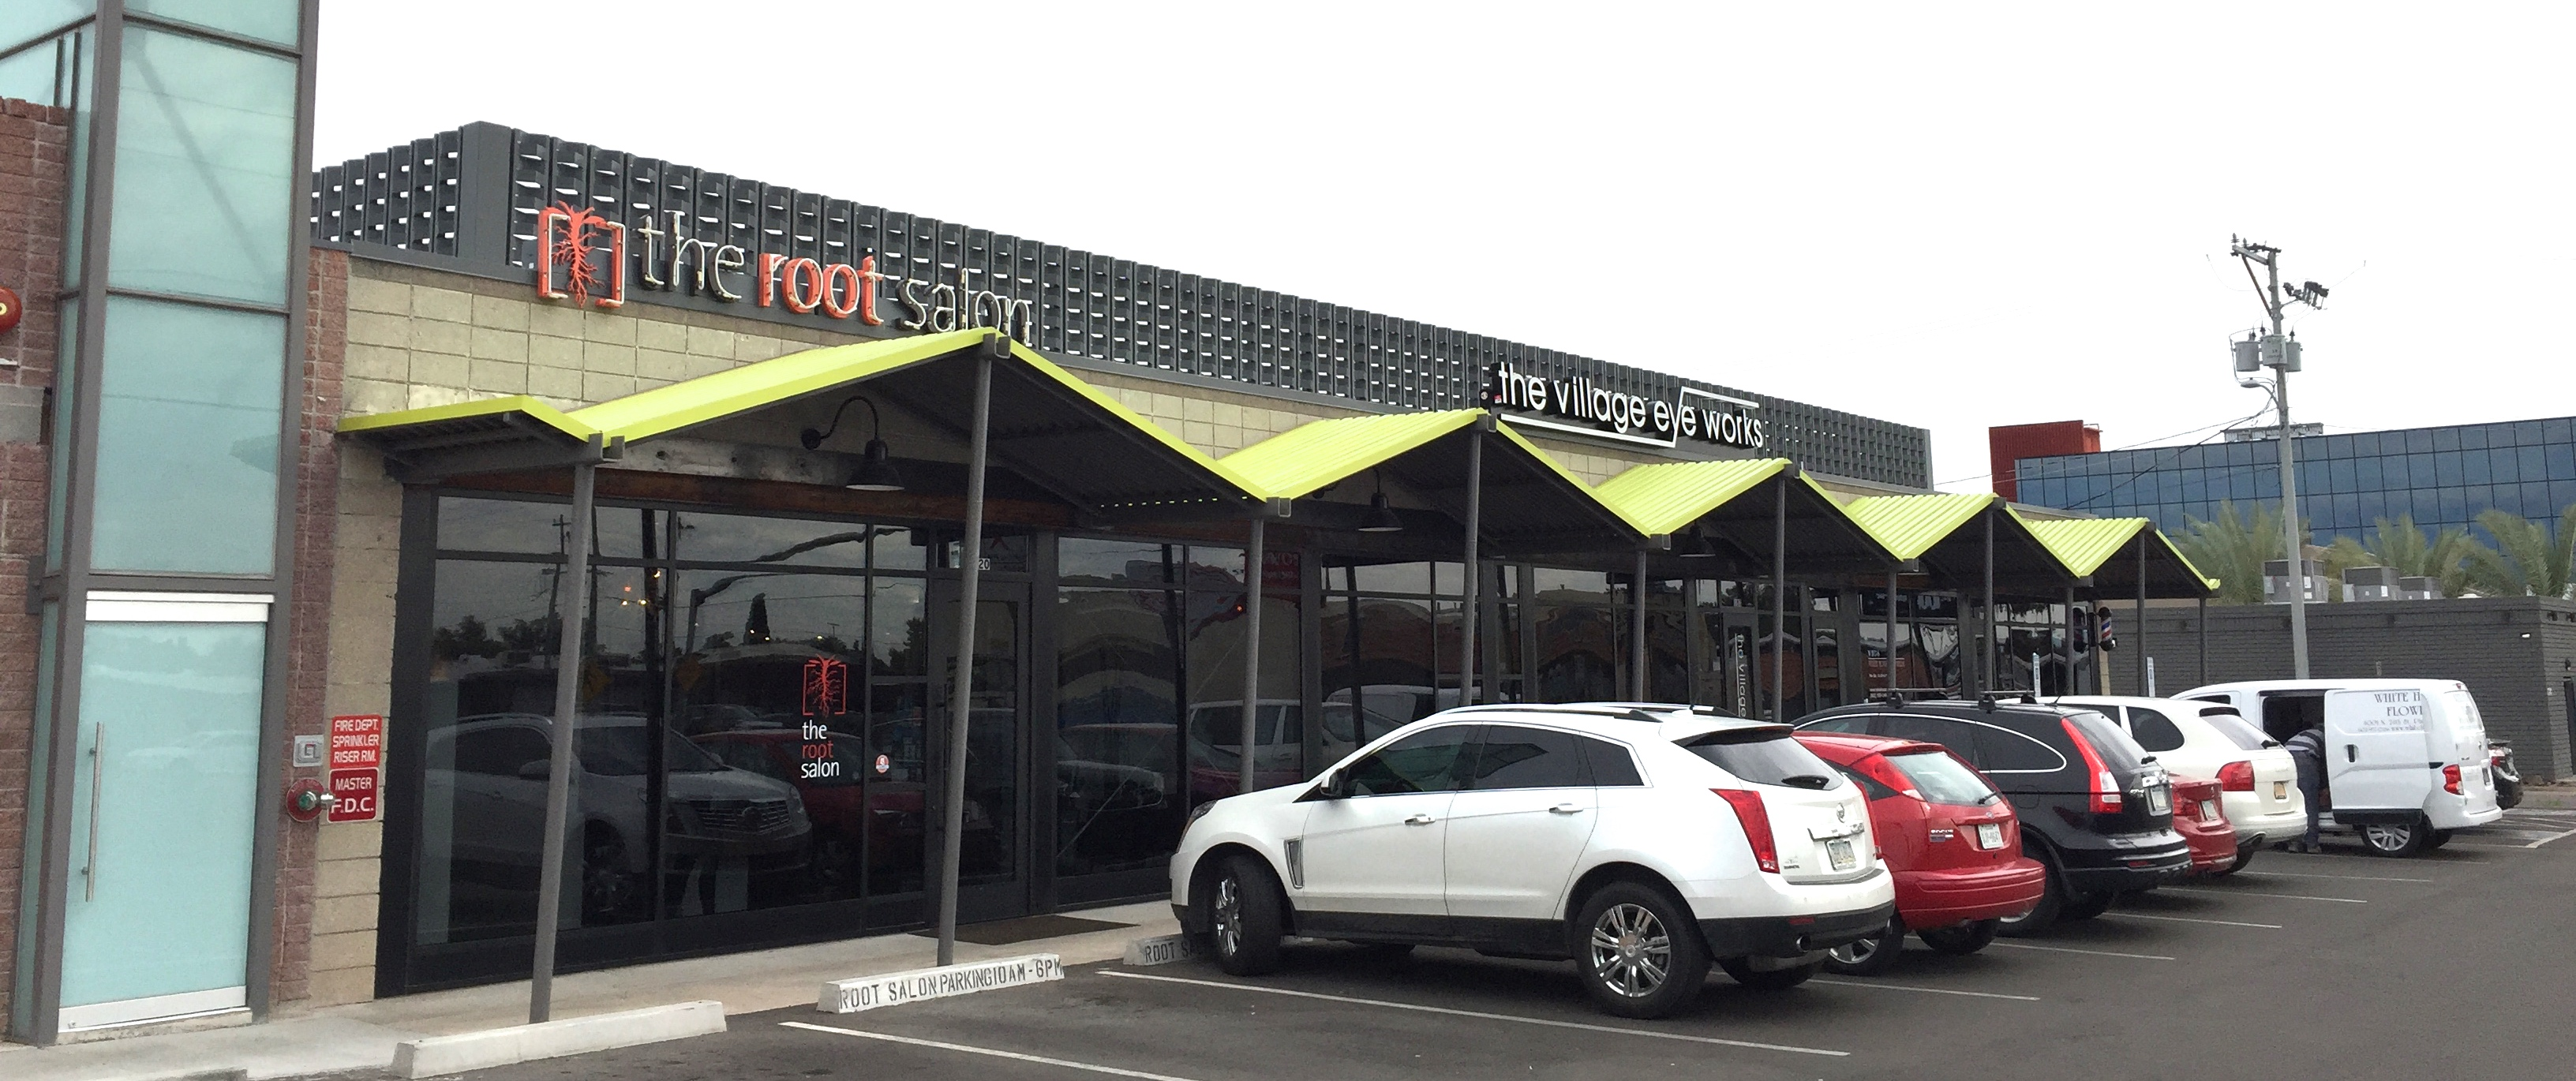 Phoenix Retail Space For Lease | Vestis Group